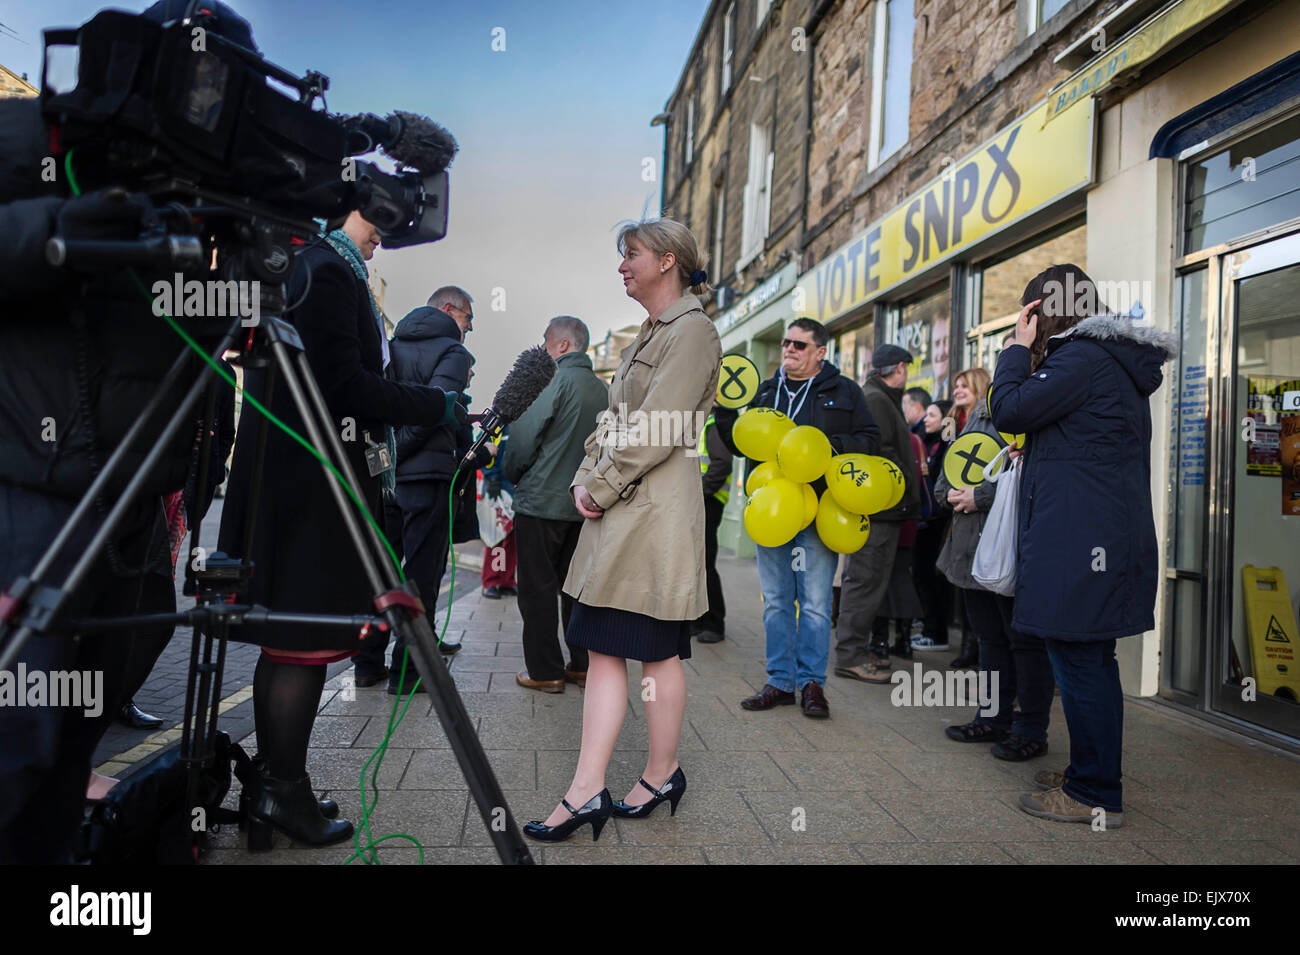 Edinburgh UK Apr 02 2015; Ahead of the seven-way leaders' debate tonight, Scotland's Health Secretary Shona - Stock Image